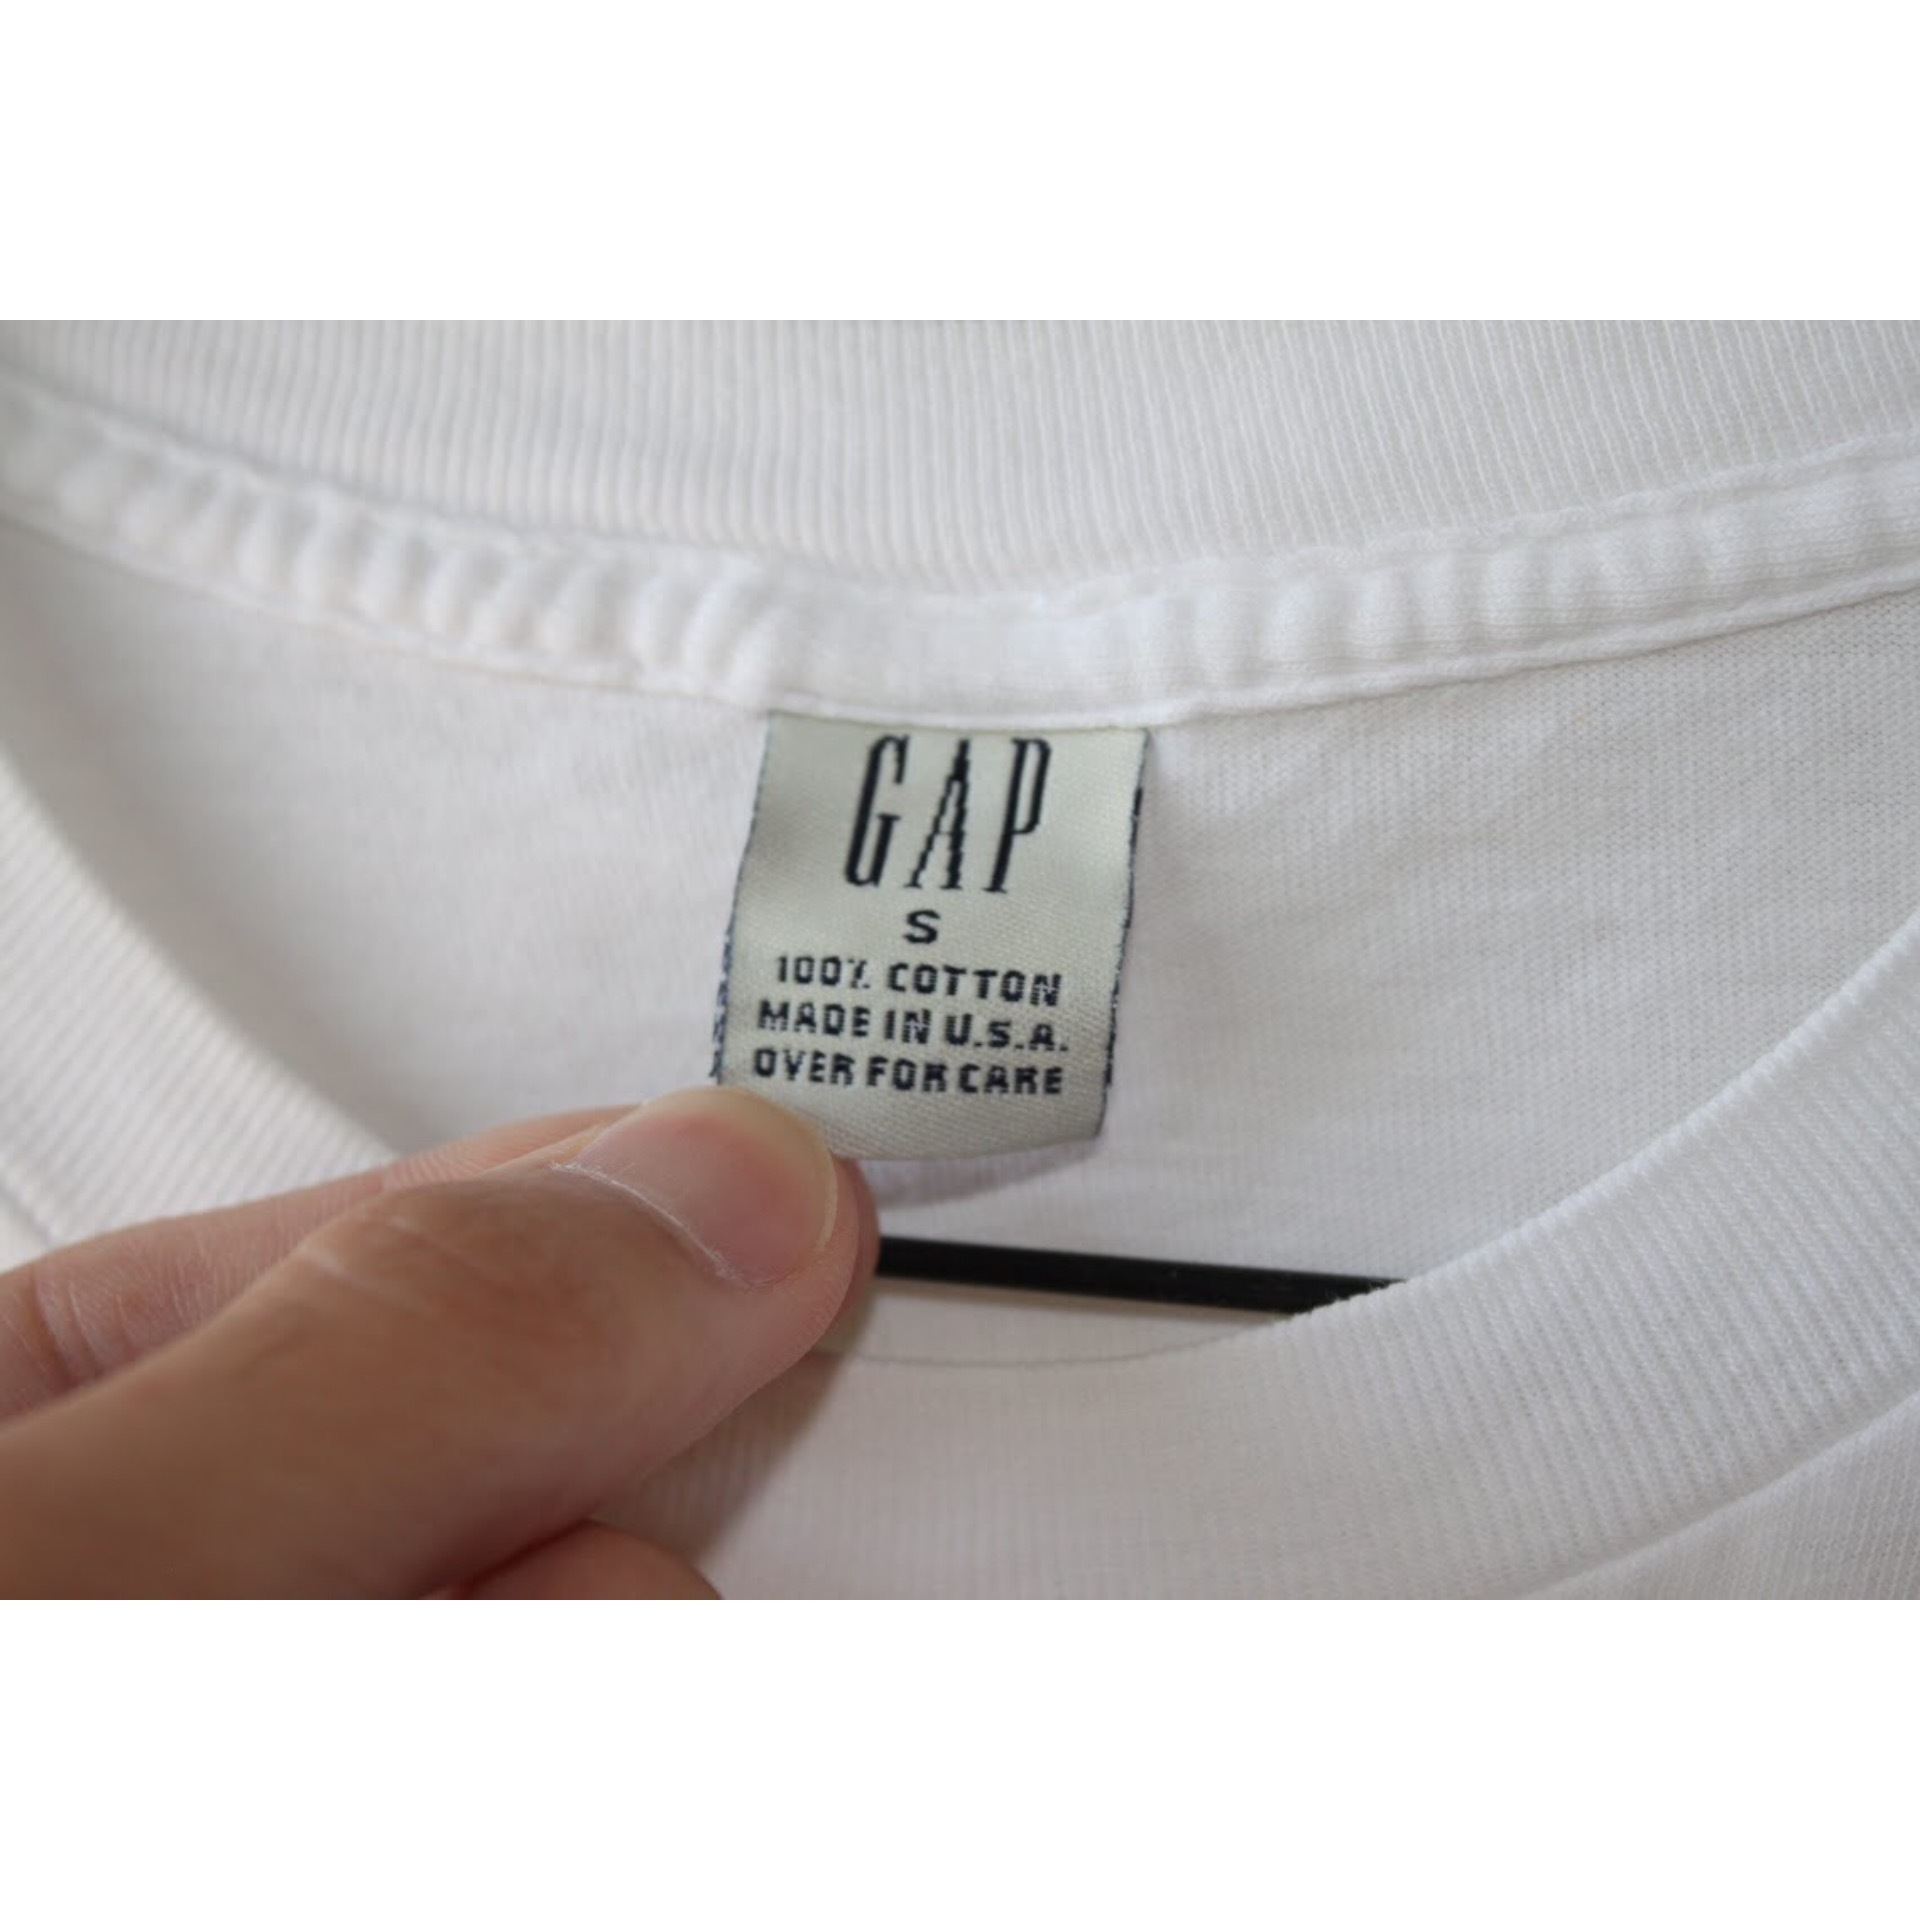 90s white pocket t shirt by GAP